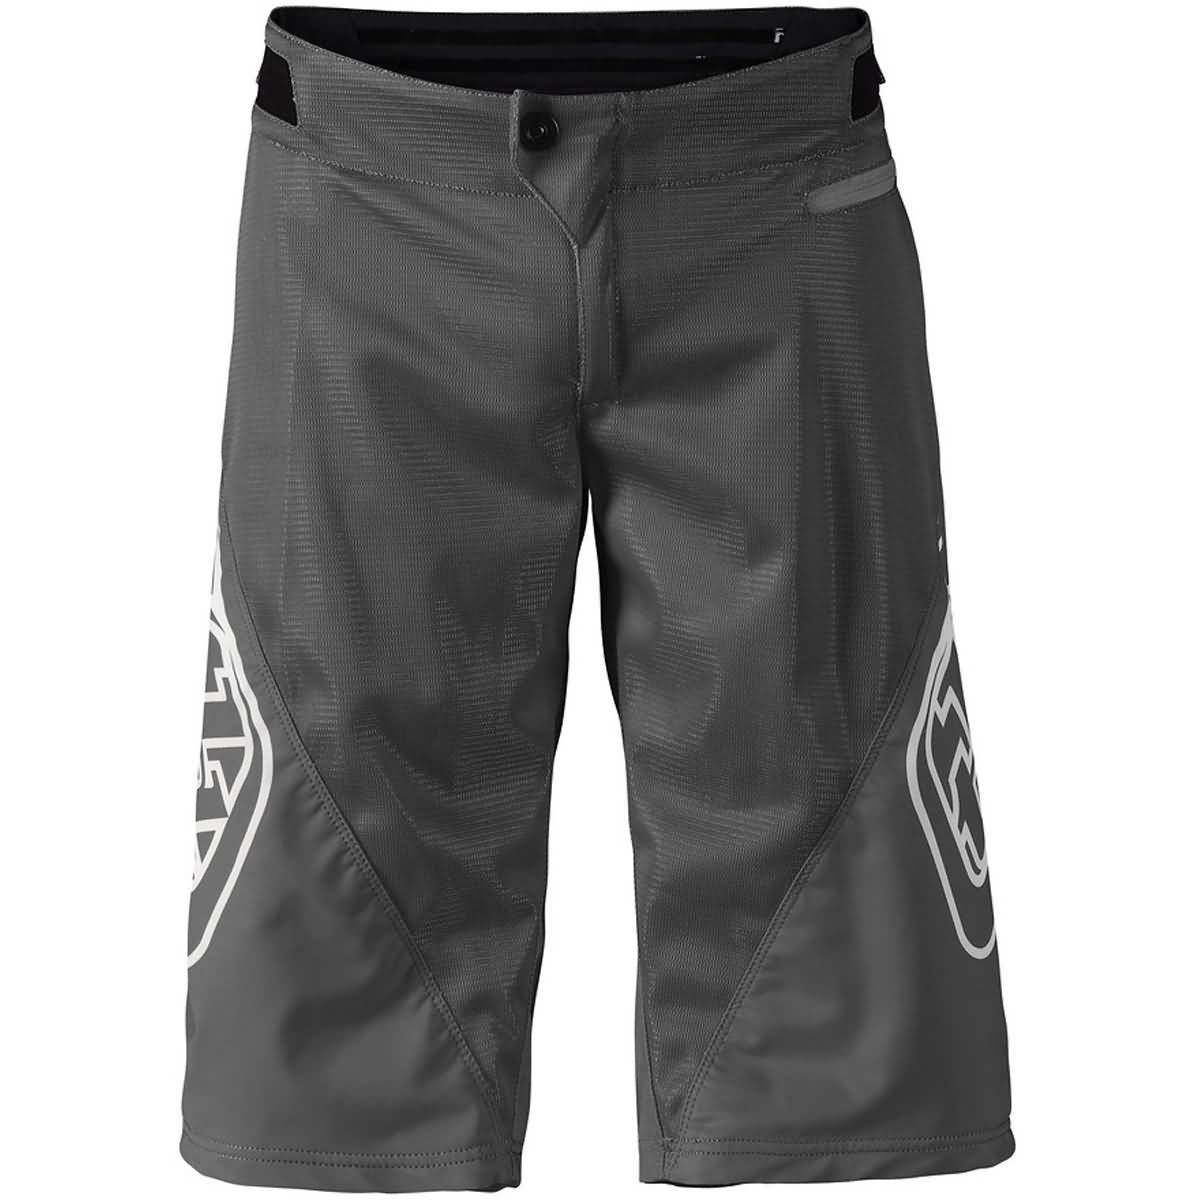 Troy Lee Designs Sprint Solid Youth Off-Road BMX Cycling Shorts - Gray / 22 by Troy Lee Designs